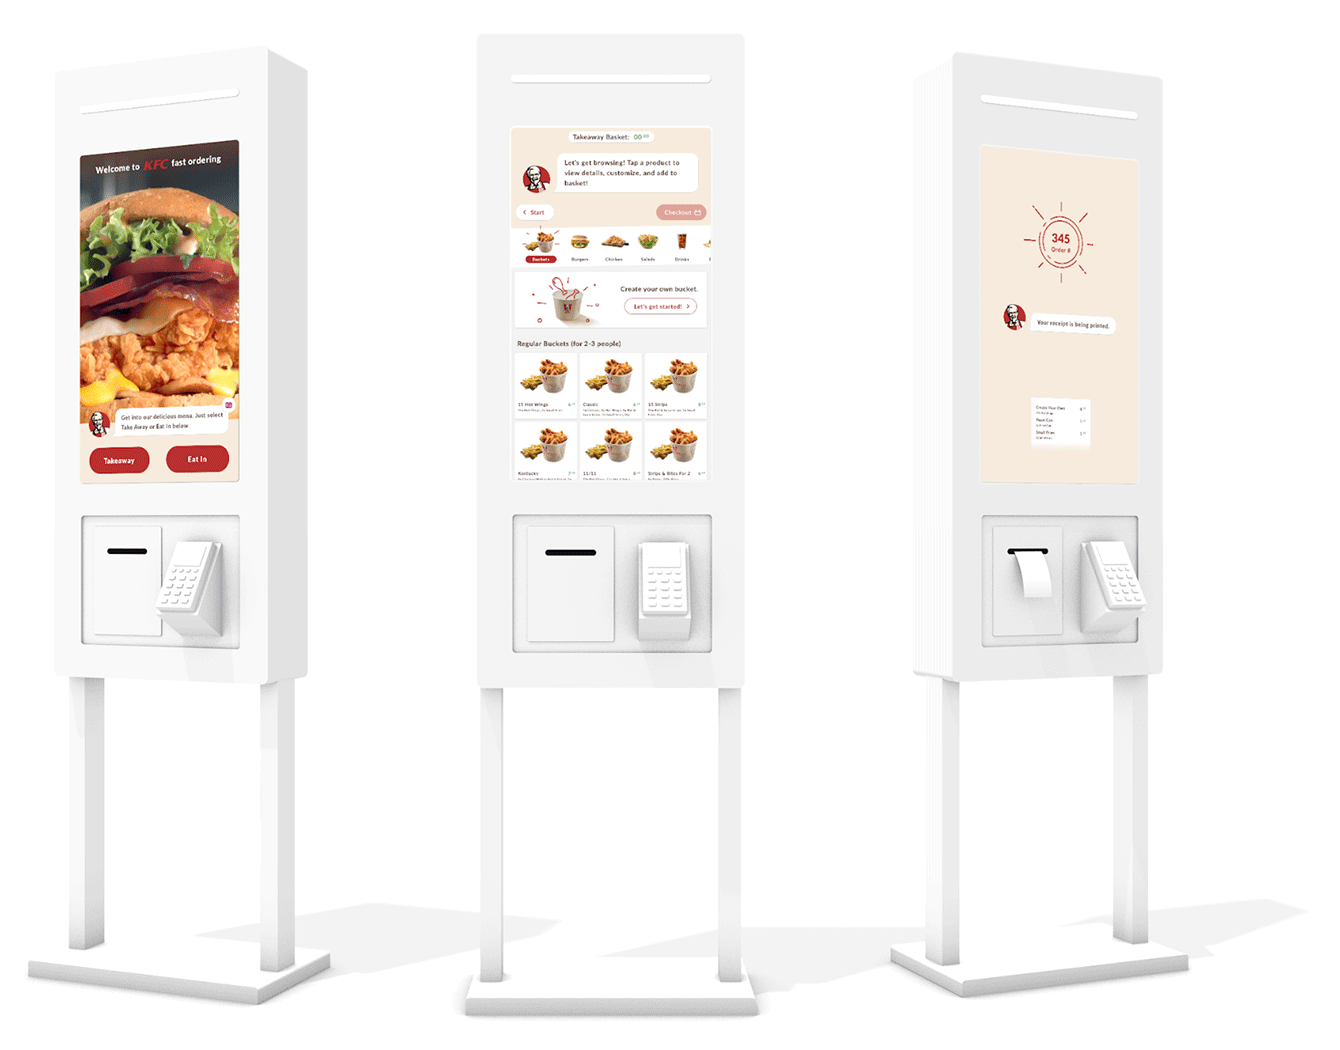 process flow diagram of kfc how to build a fast food restaurant self service ordering kiosk  restaurant self service ordering kiosk